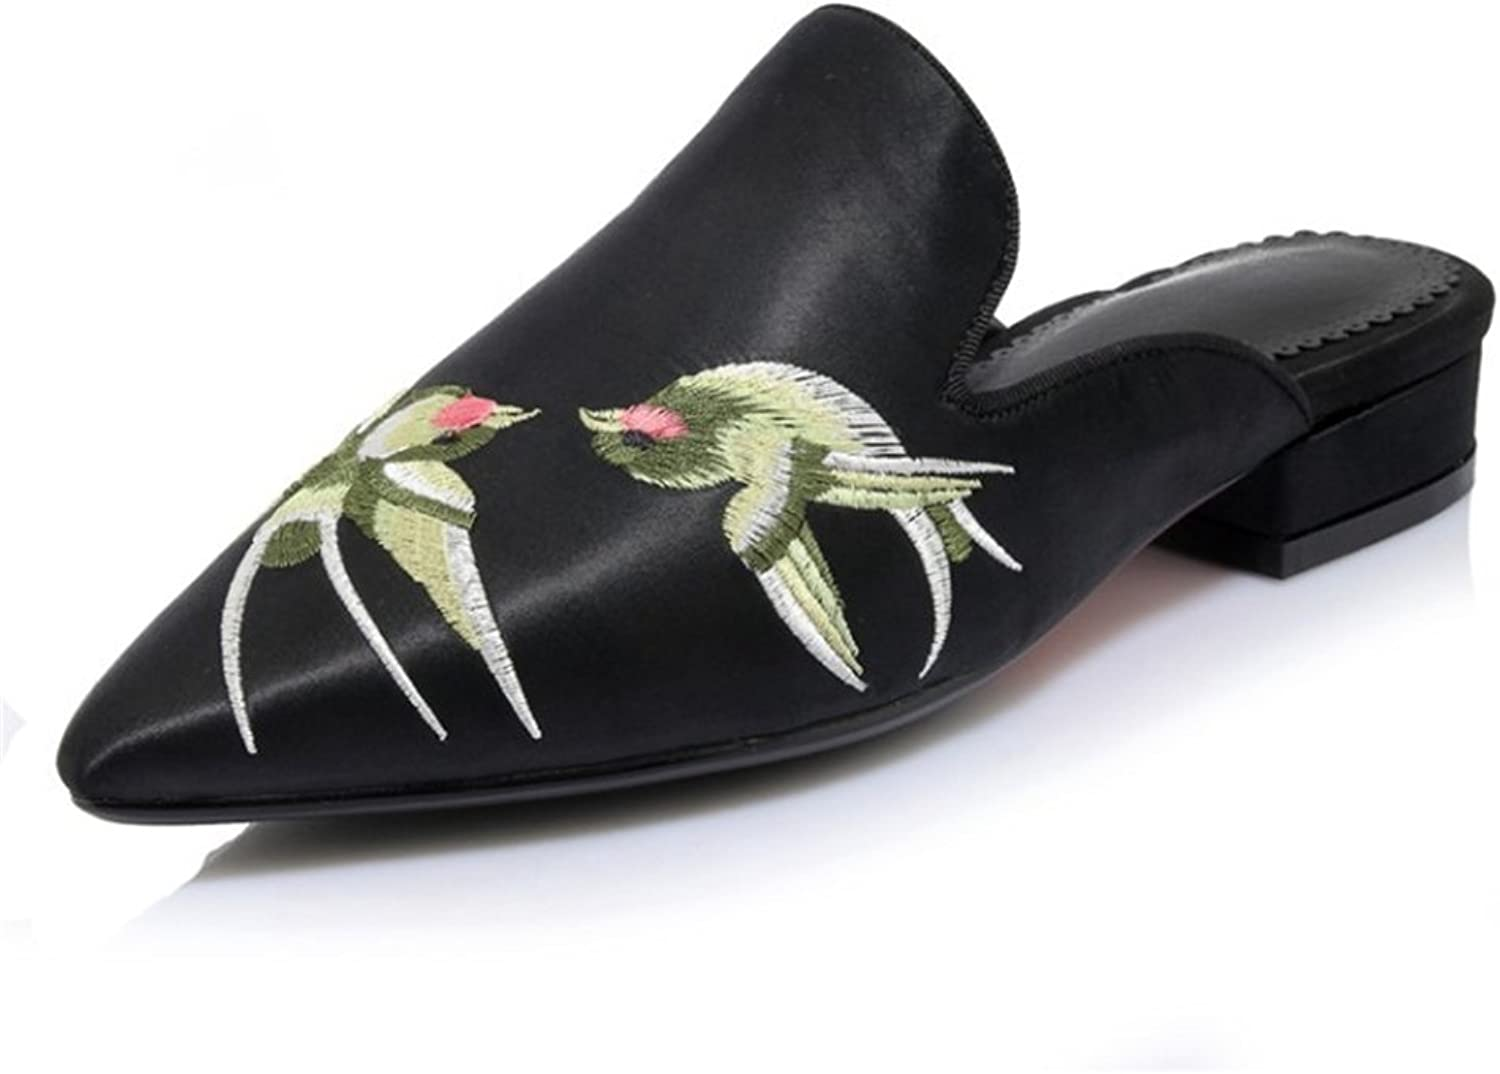 Women's shoes New Spring Summer Handmade Embroidery Sandals Slipper Flat Heel Pointed Wedding shoes Europe America Style Ladies shoes Sandals